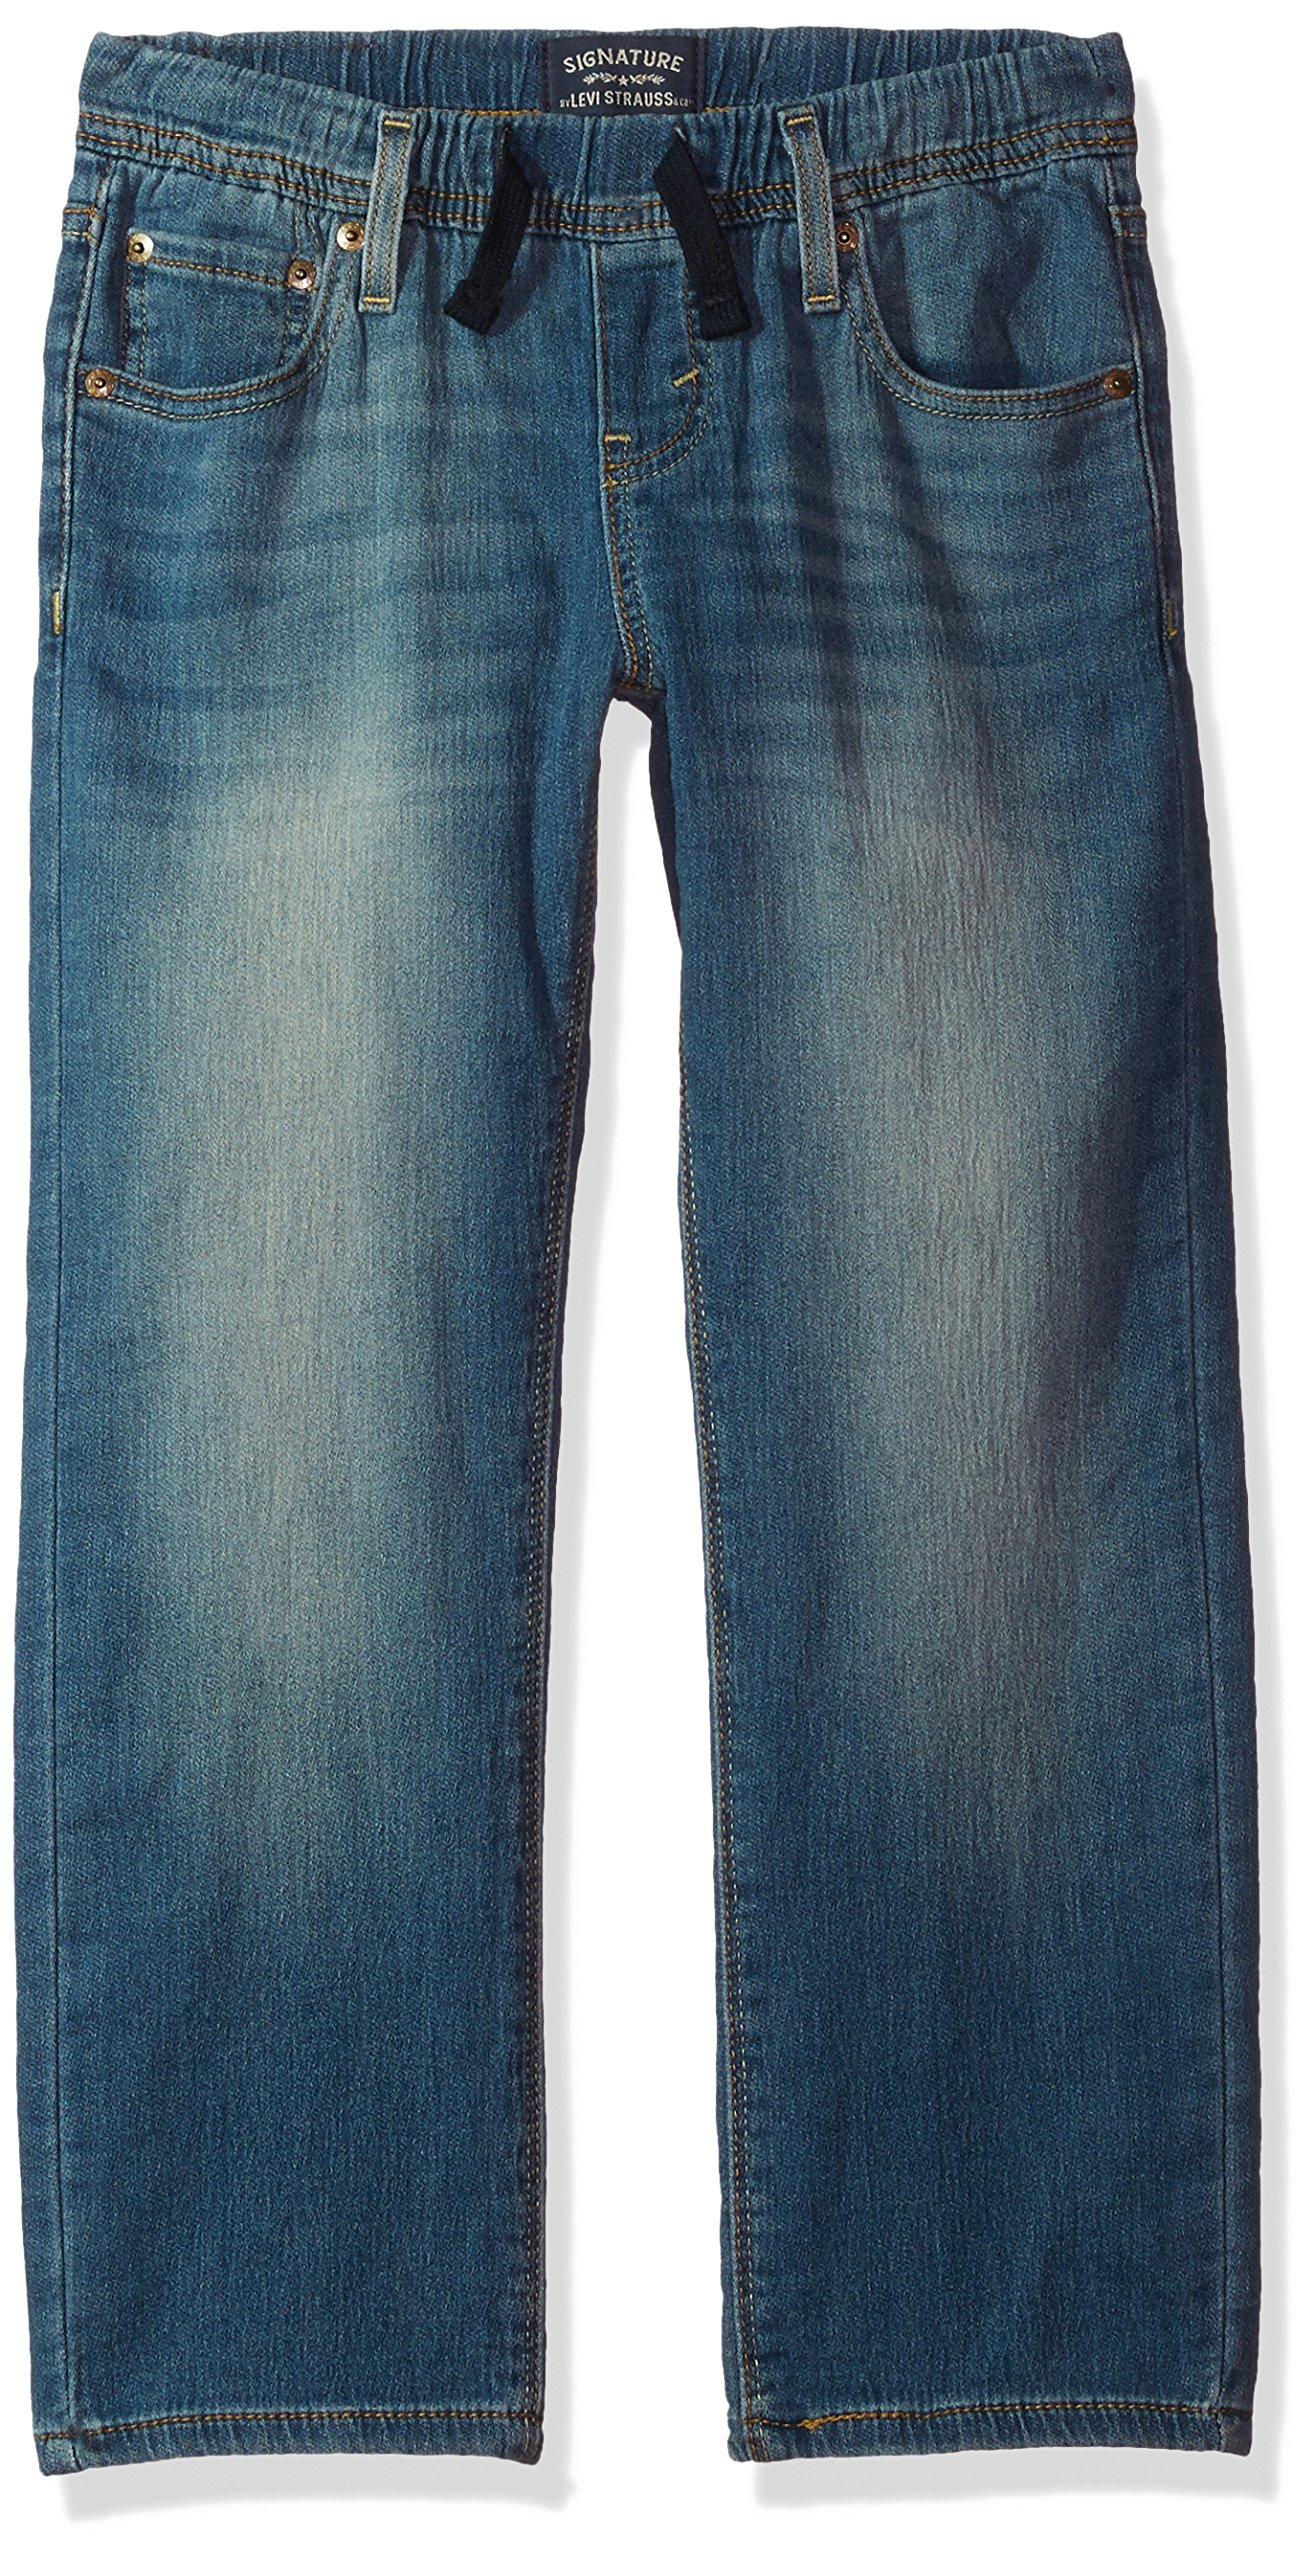 Signature by Levi Strauss & Co. Gold Label Big Boys' Athletic Recess Fit Jeans, Gulf, 10